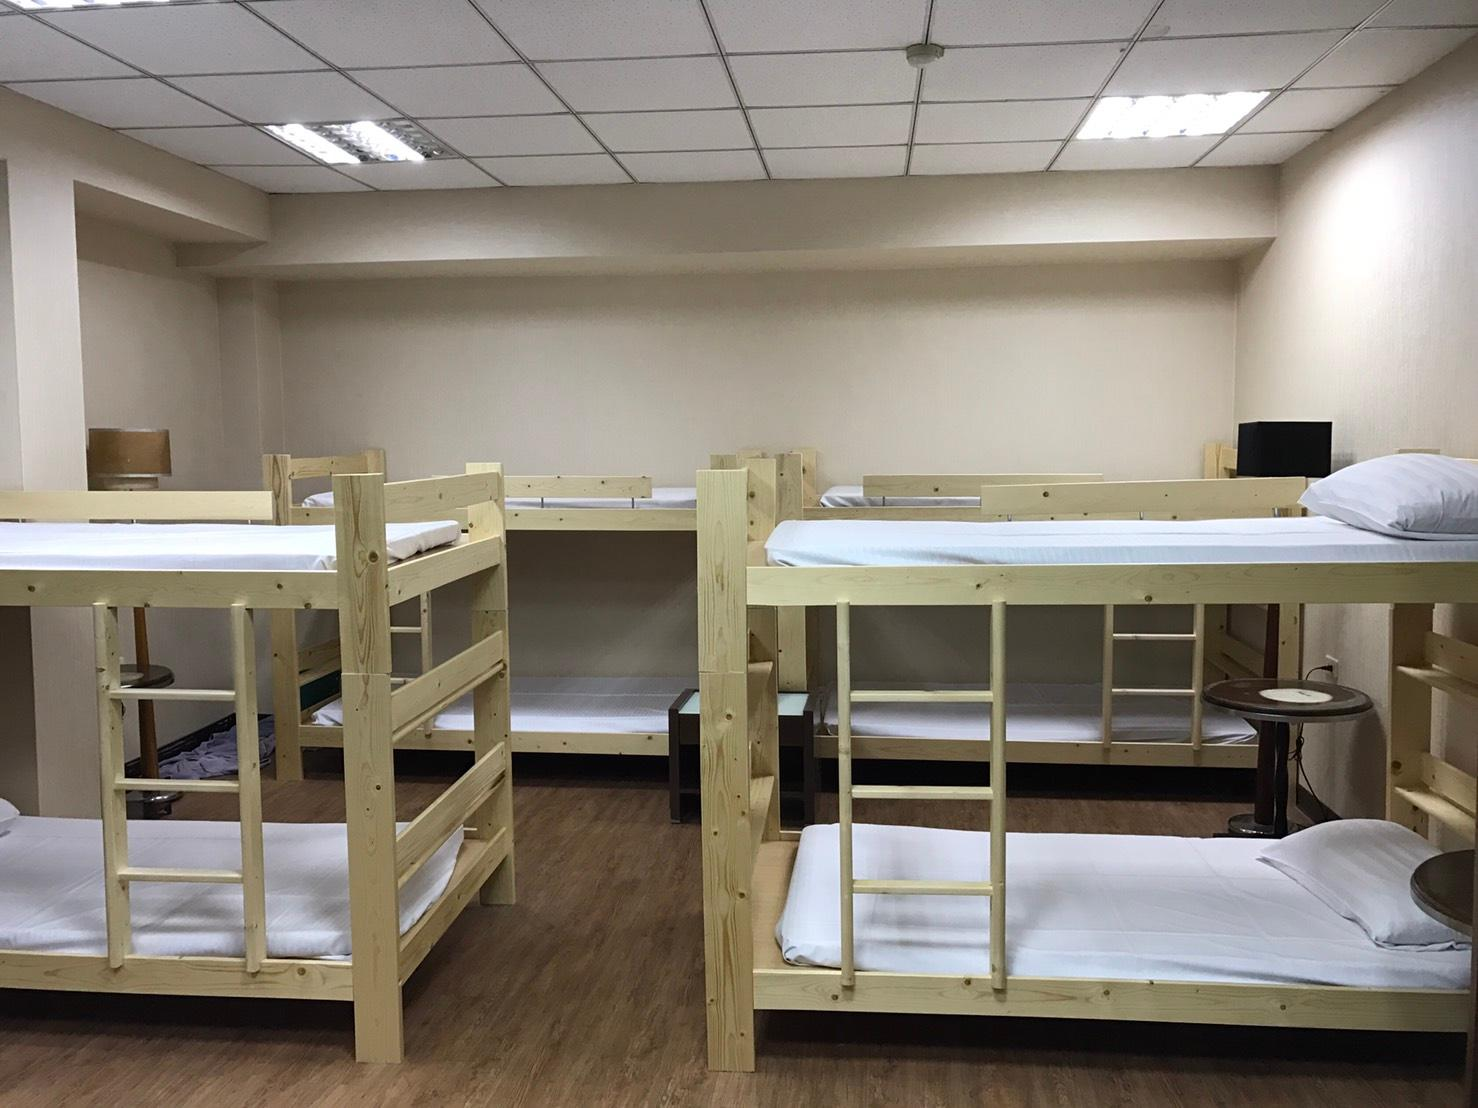 Backpacker客房 - 按床計價 (Backpackers Room (Price per bed))